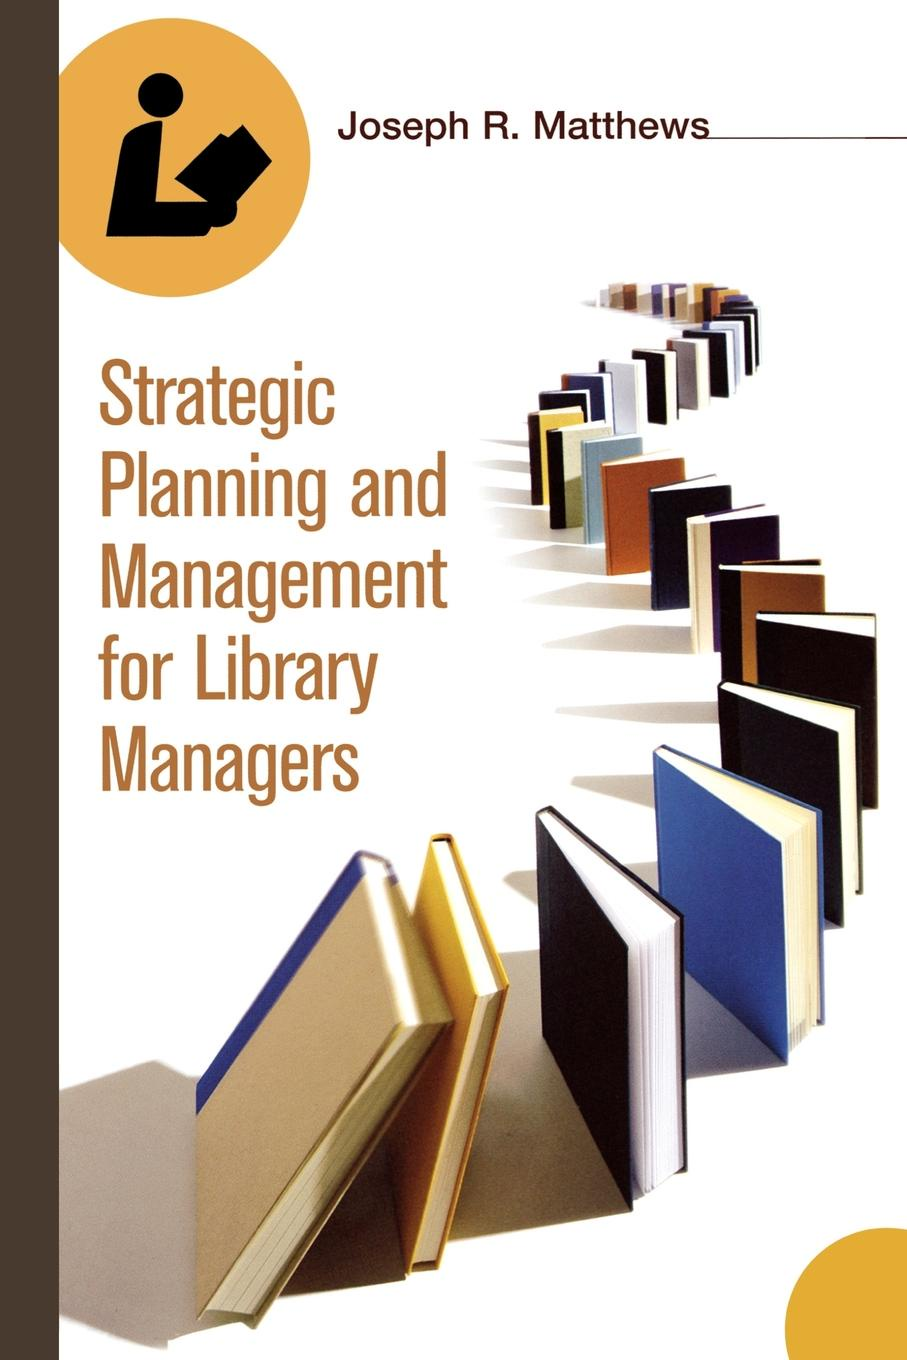 лучшая цена Joseph Attorney Matthews Strategic Planning and Management for Library Managers